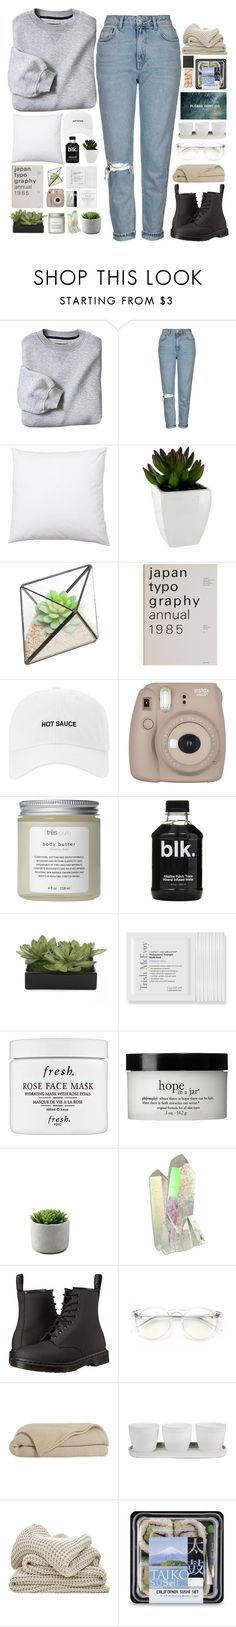 """""""rainy days 🌻"""" by lanadelnotyou ❤ liked on Polyvore featuring Topshop, Fujifilm, Très Pure, Lux-Art Silks, Trish McEvoy, Fresh, philosophy, Dr. Martens, Wildfox and Threshold"""